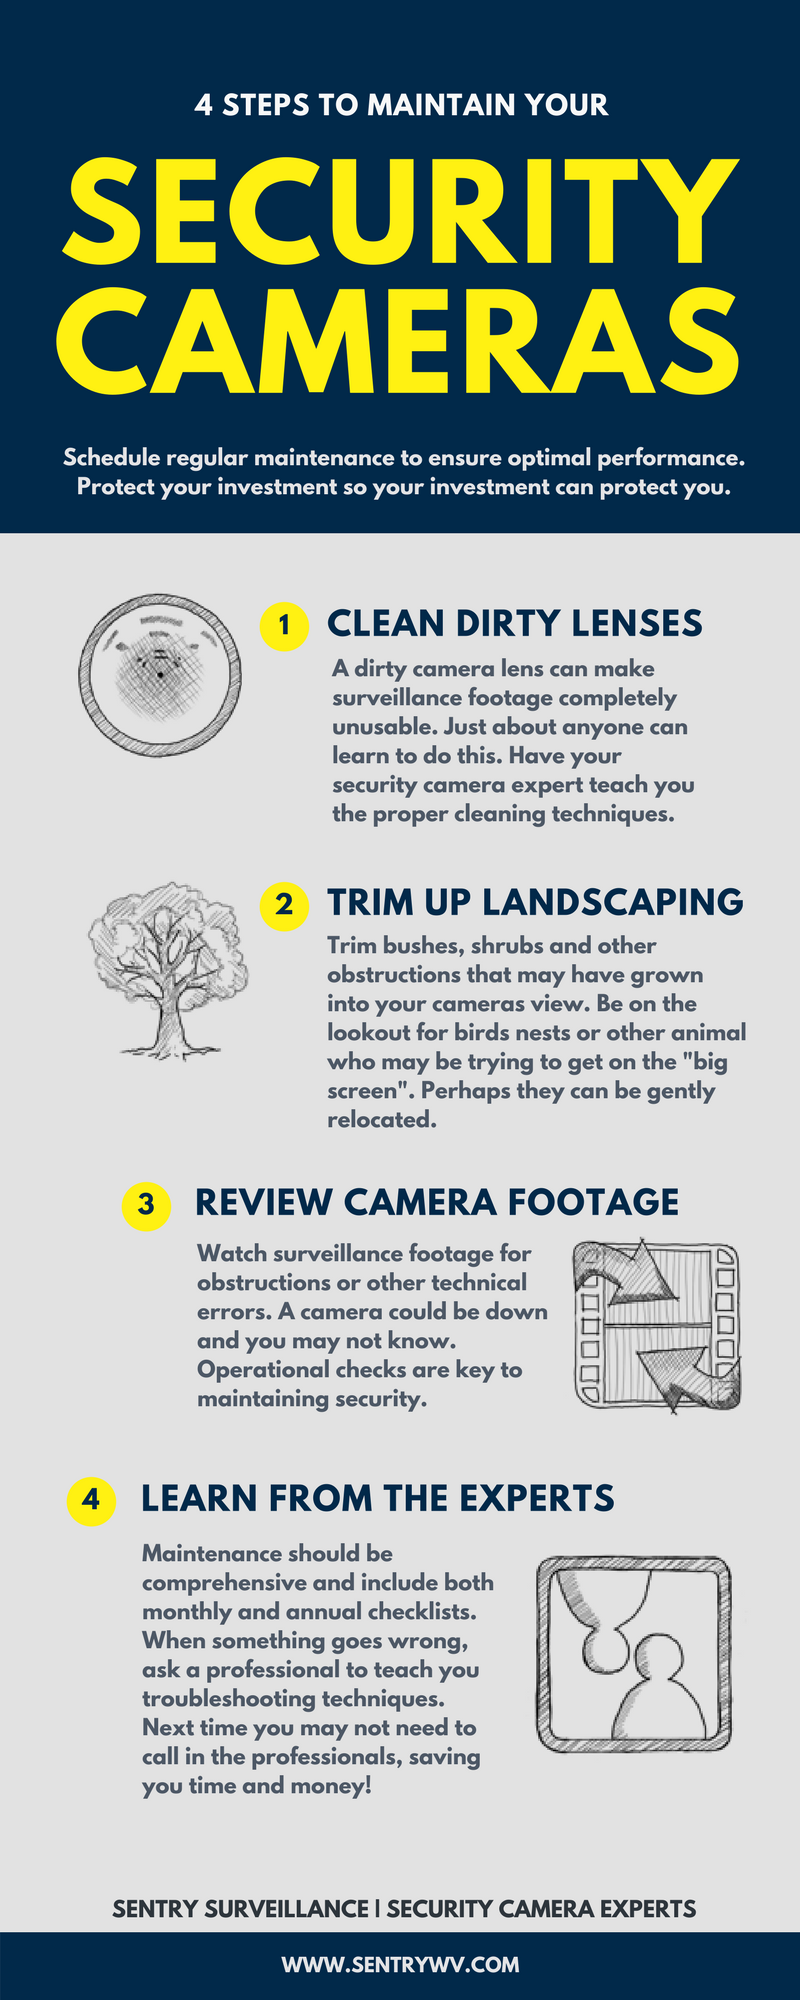 4 Steps To Maintain Your Security Camera INFOGRAPHIC